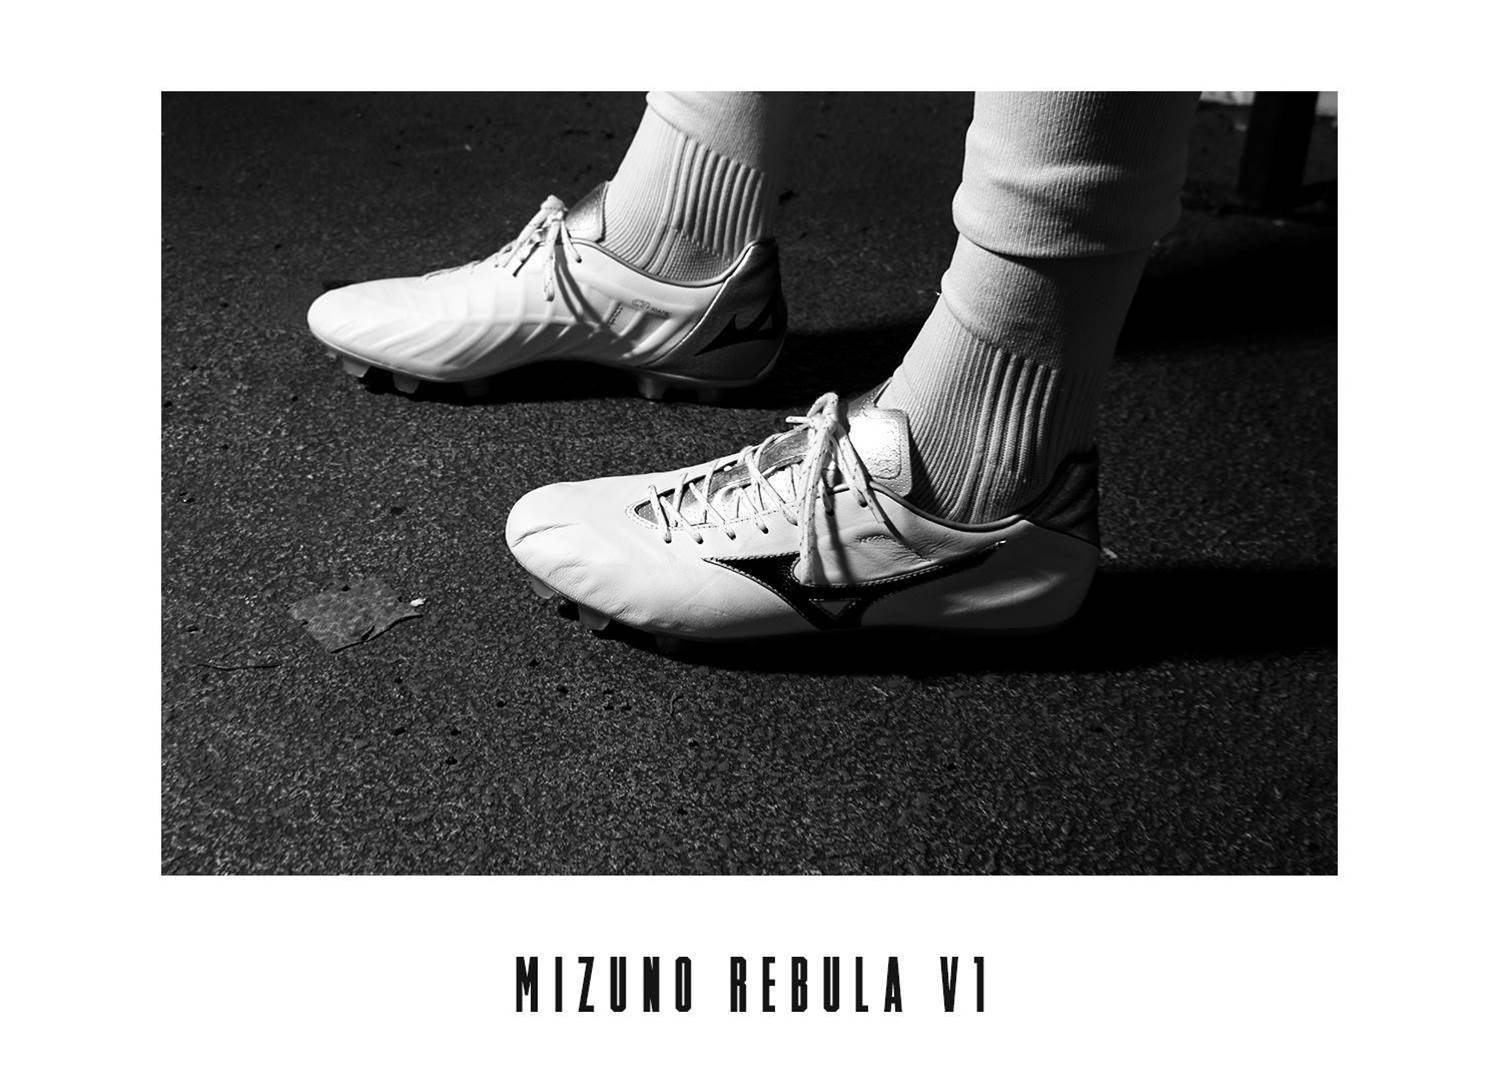 Gearing up with Mizuno